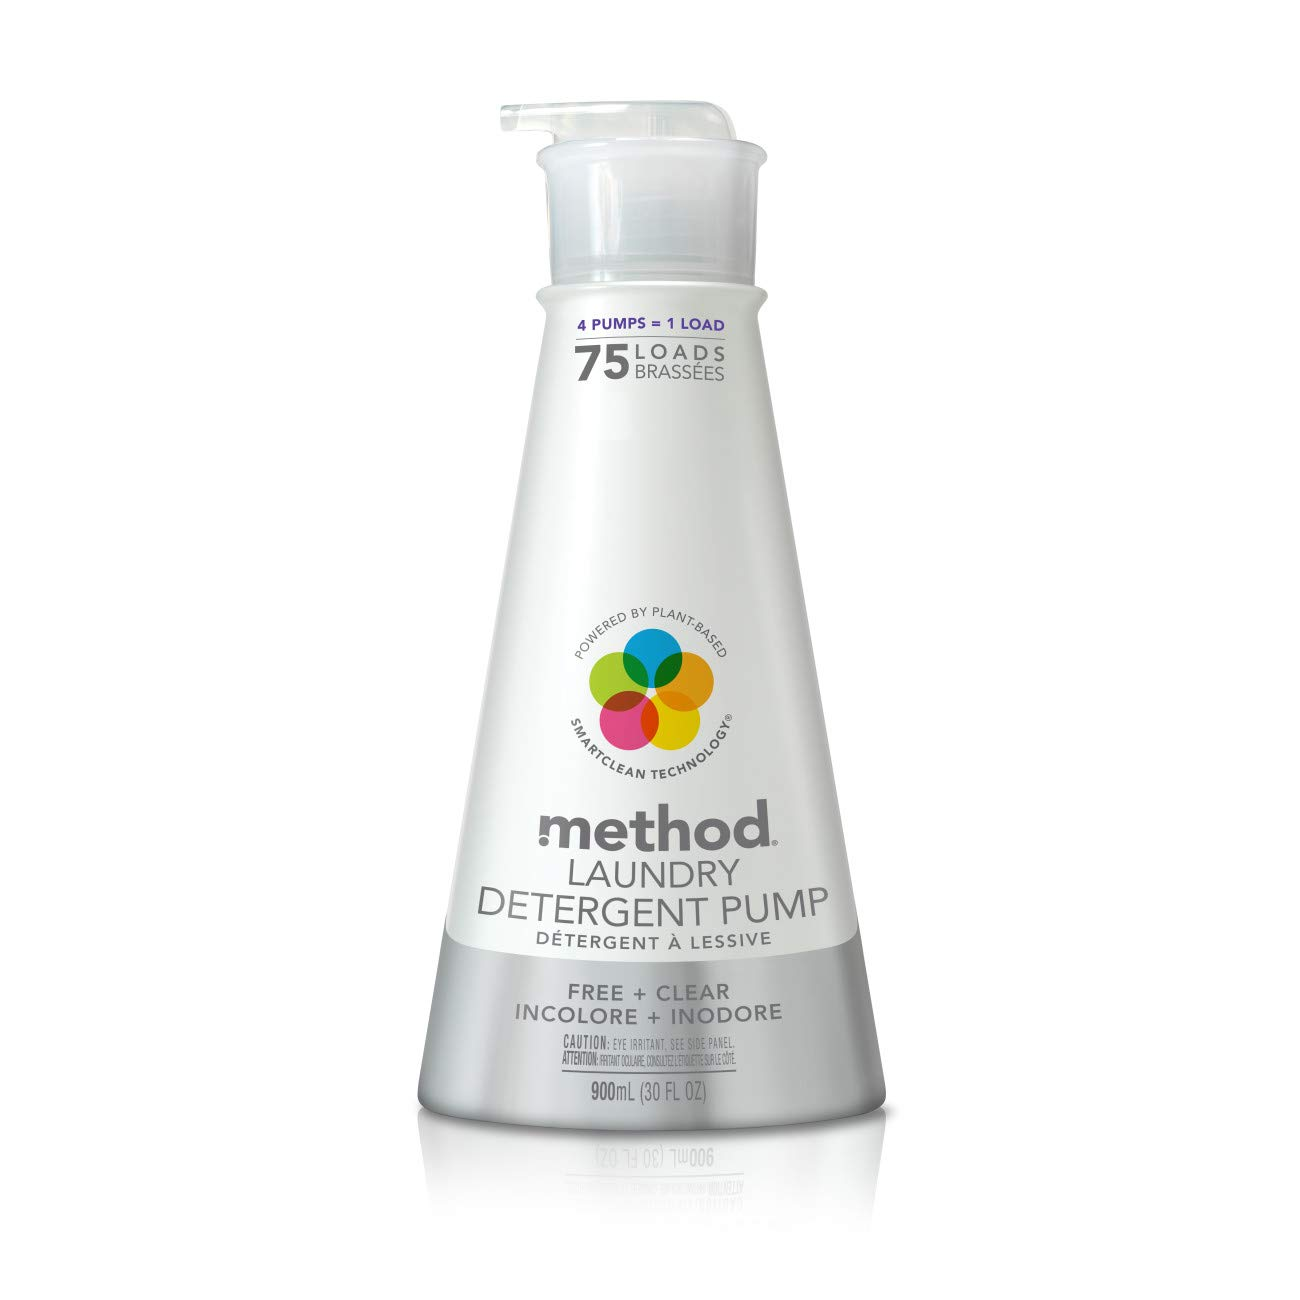 Method Laundry Detergent Pump, Free + Clear, 30 Fl Oz, 75 Loads